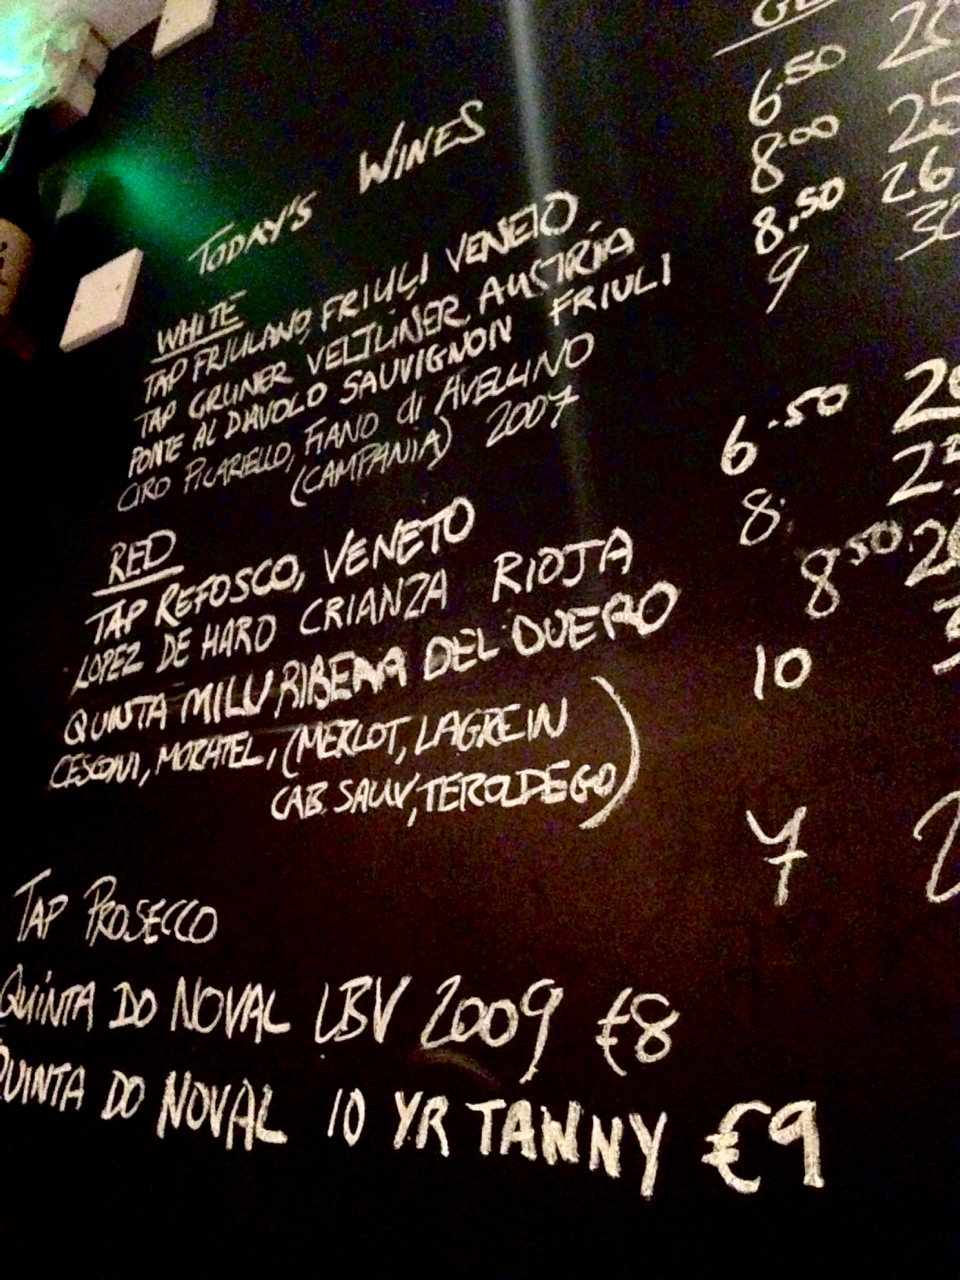 Etto wine specials board glasses bottles dublin gastrogays